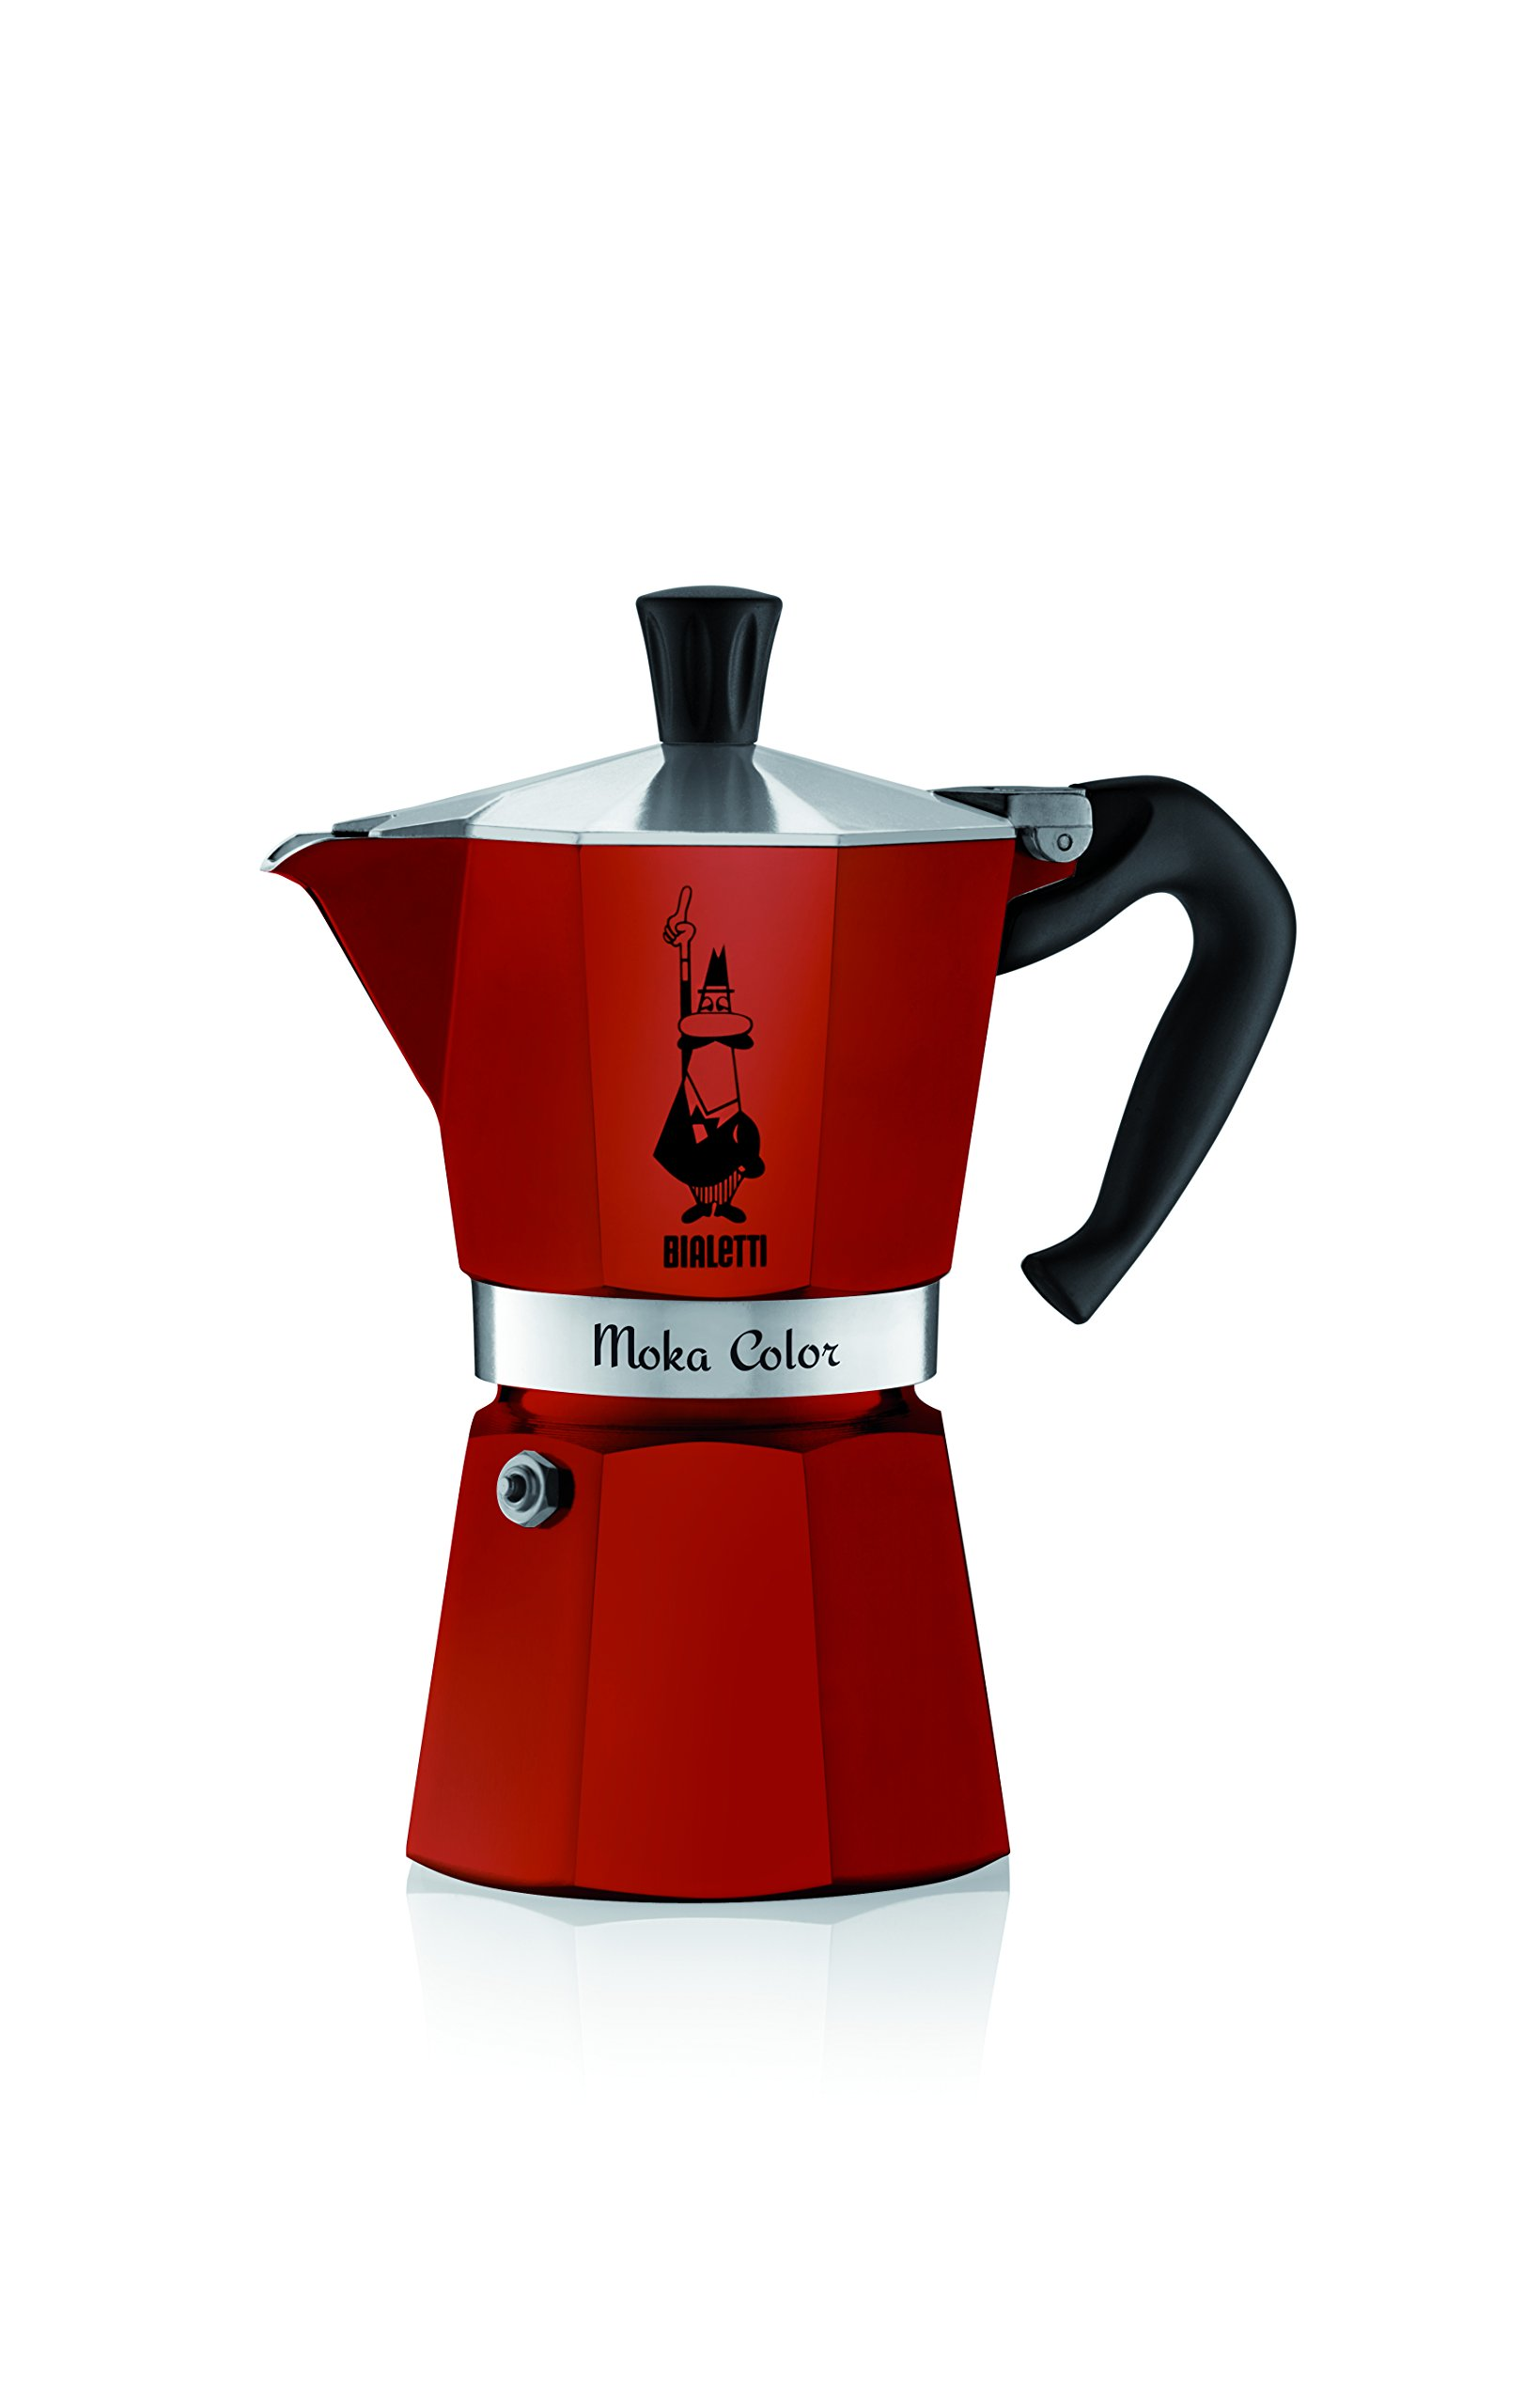 Bialetti 06905 6-Cup Espresso Coffee Maker, Red